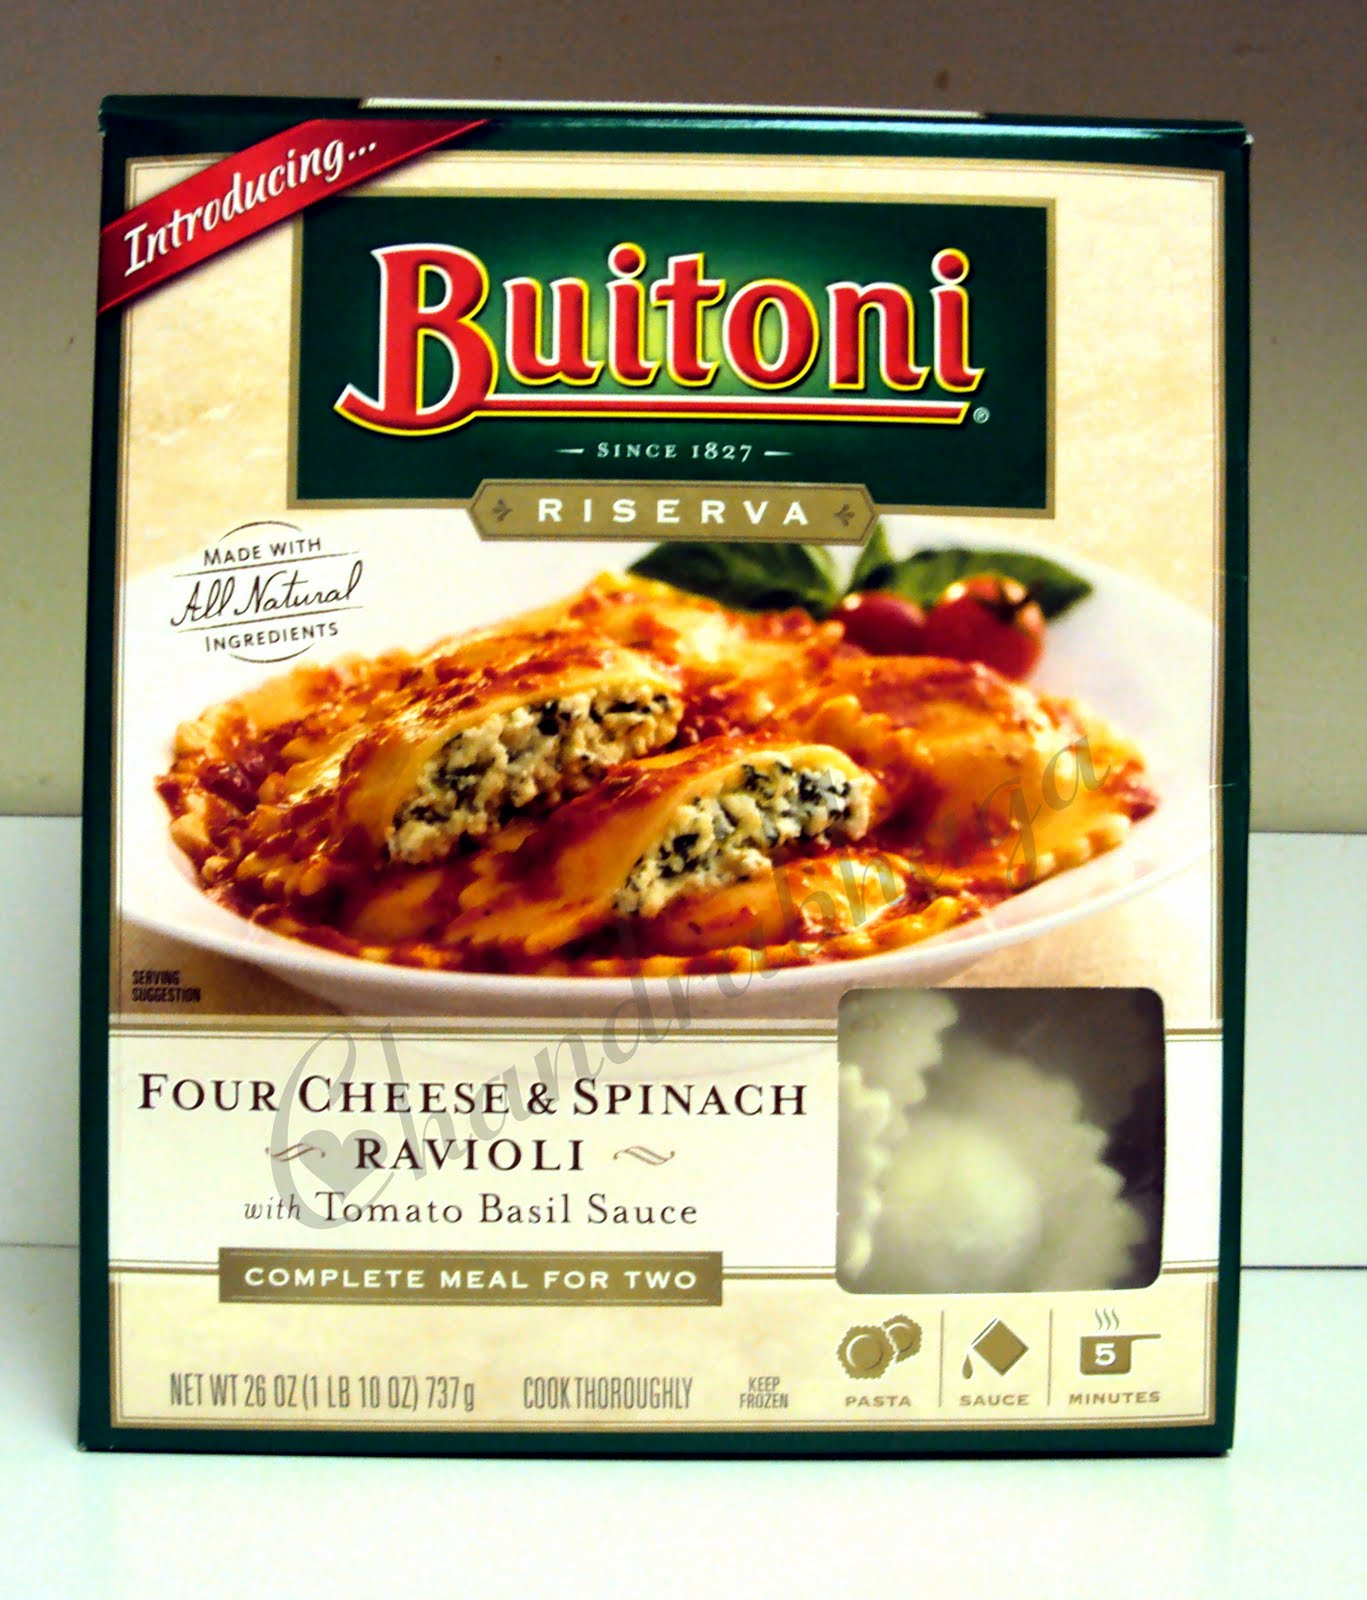 Buitoni frozen meals for two